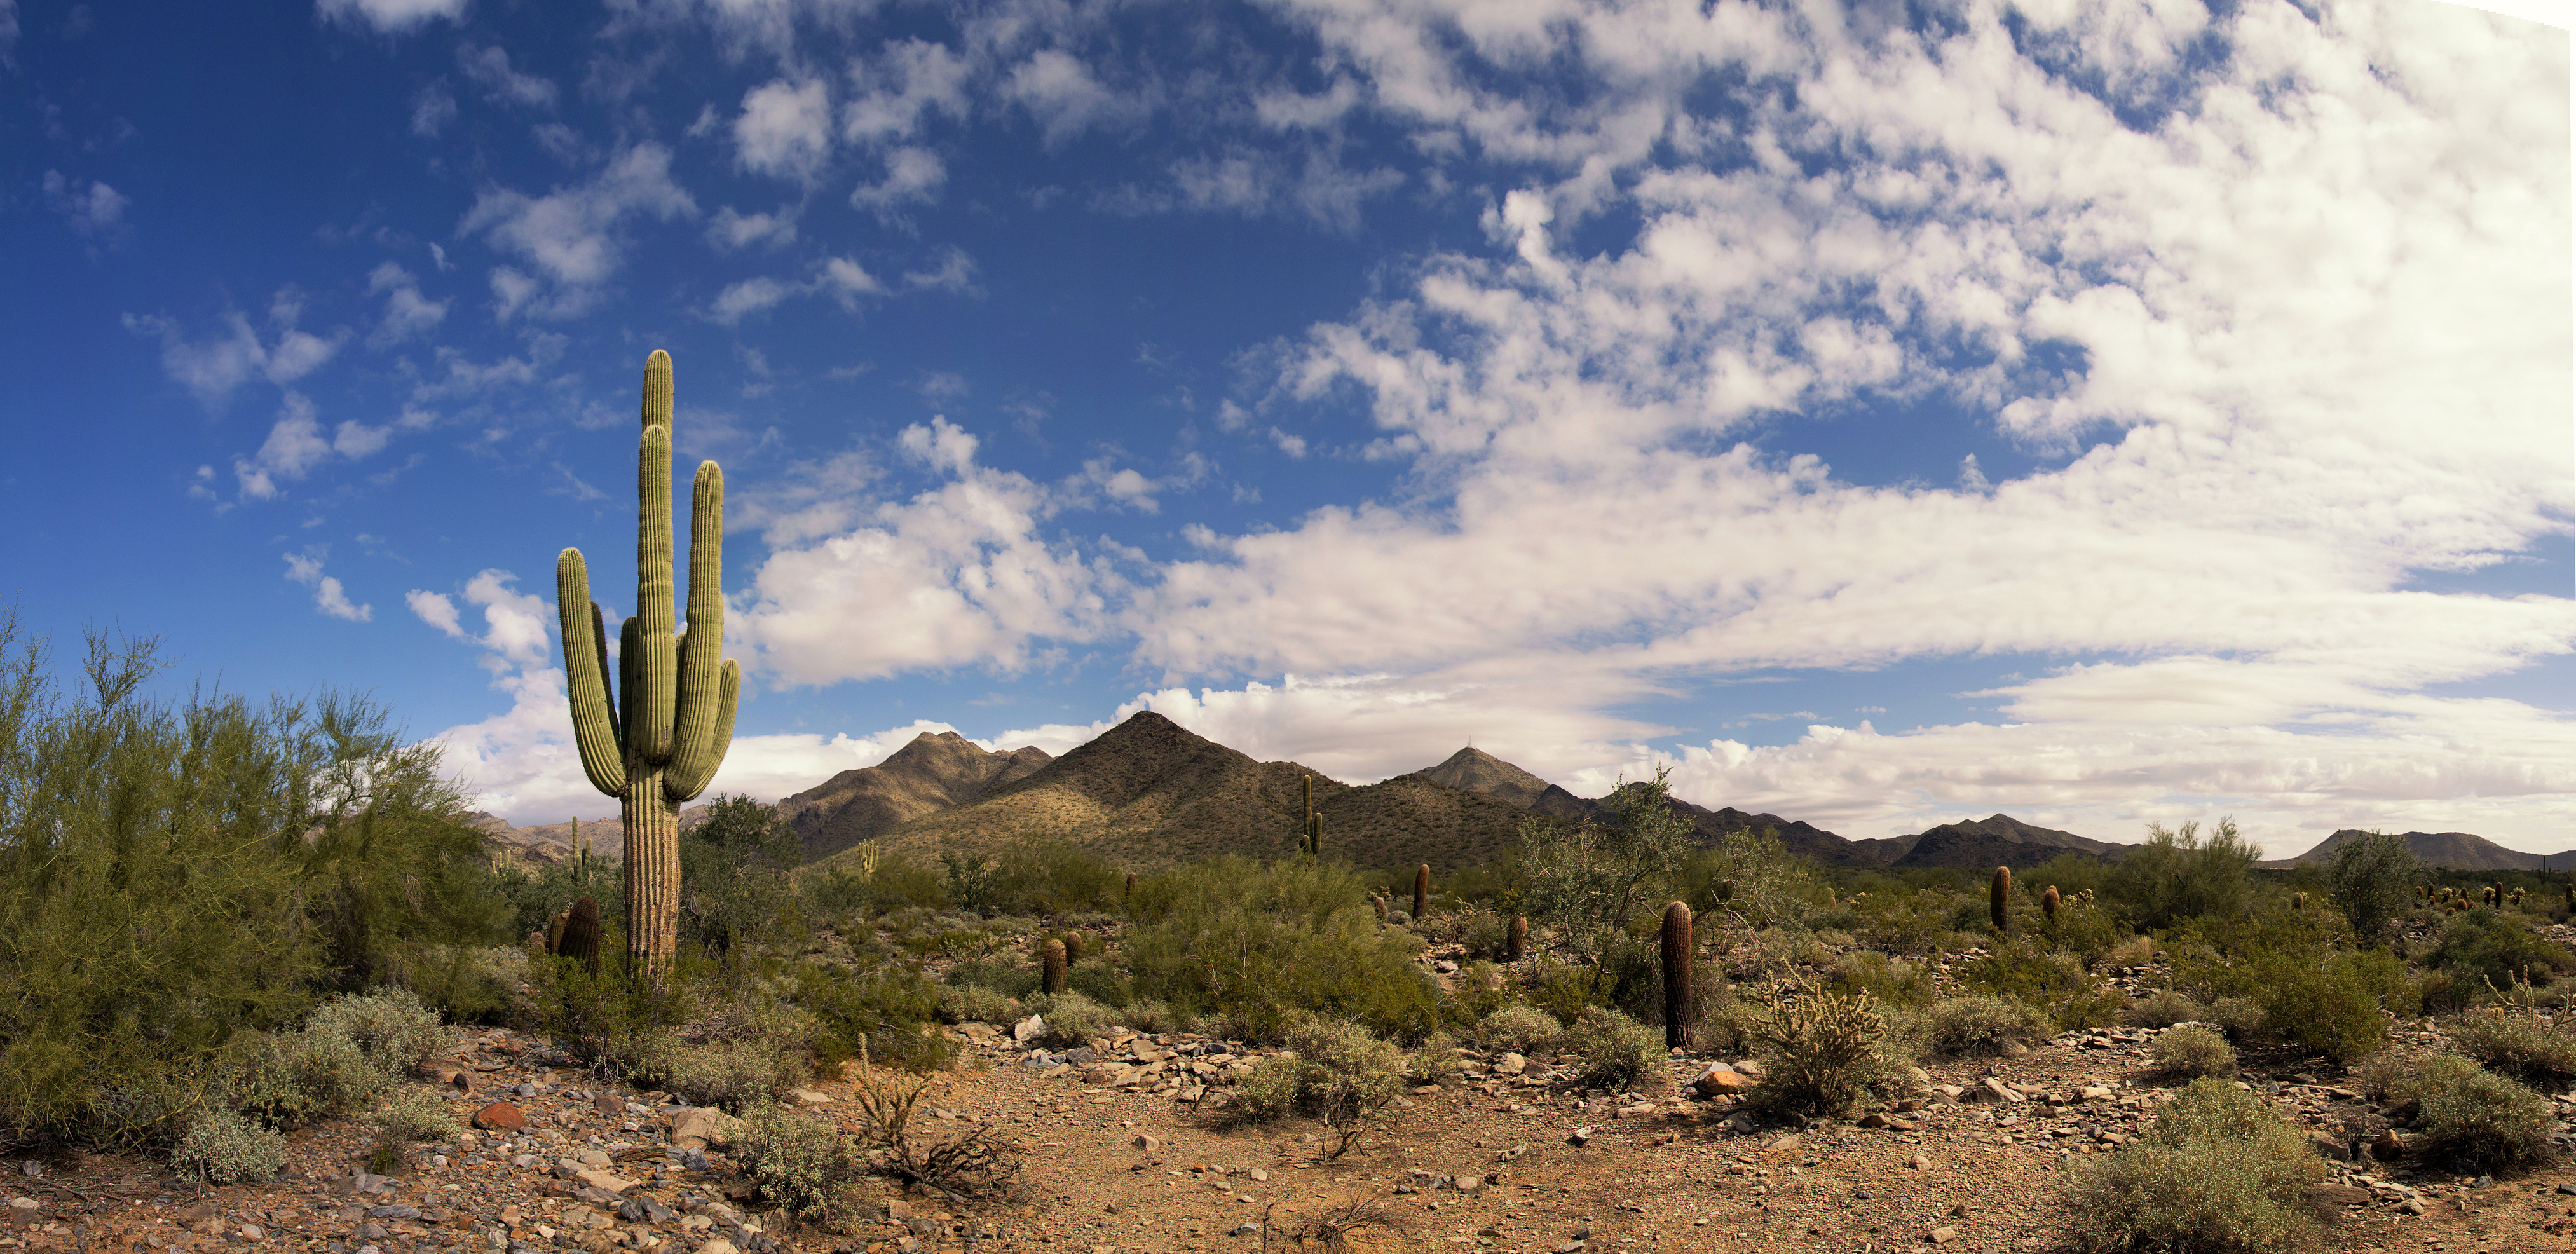 Cactus Highway Blooms with Color this Spring